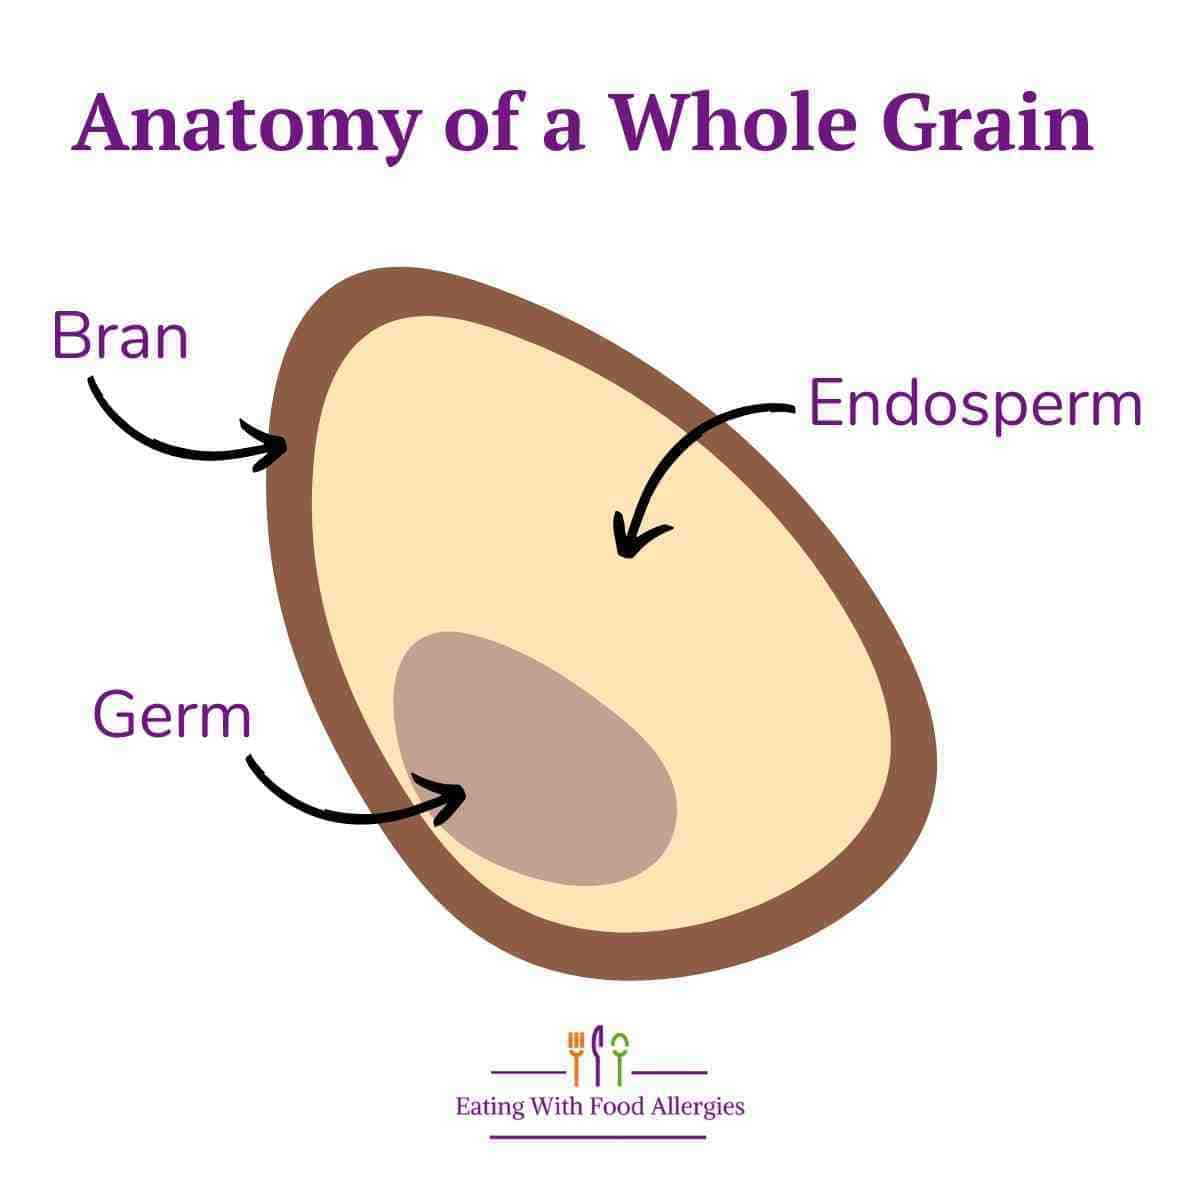 The anatomy of a whole grain that includes three parts: the bran, the germ, and the endosperm.